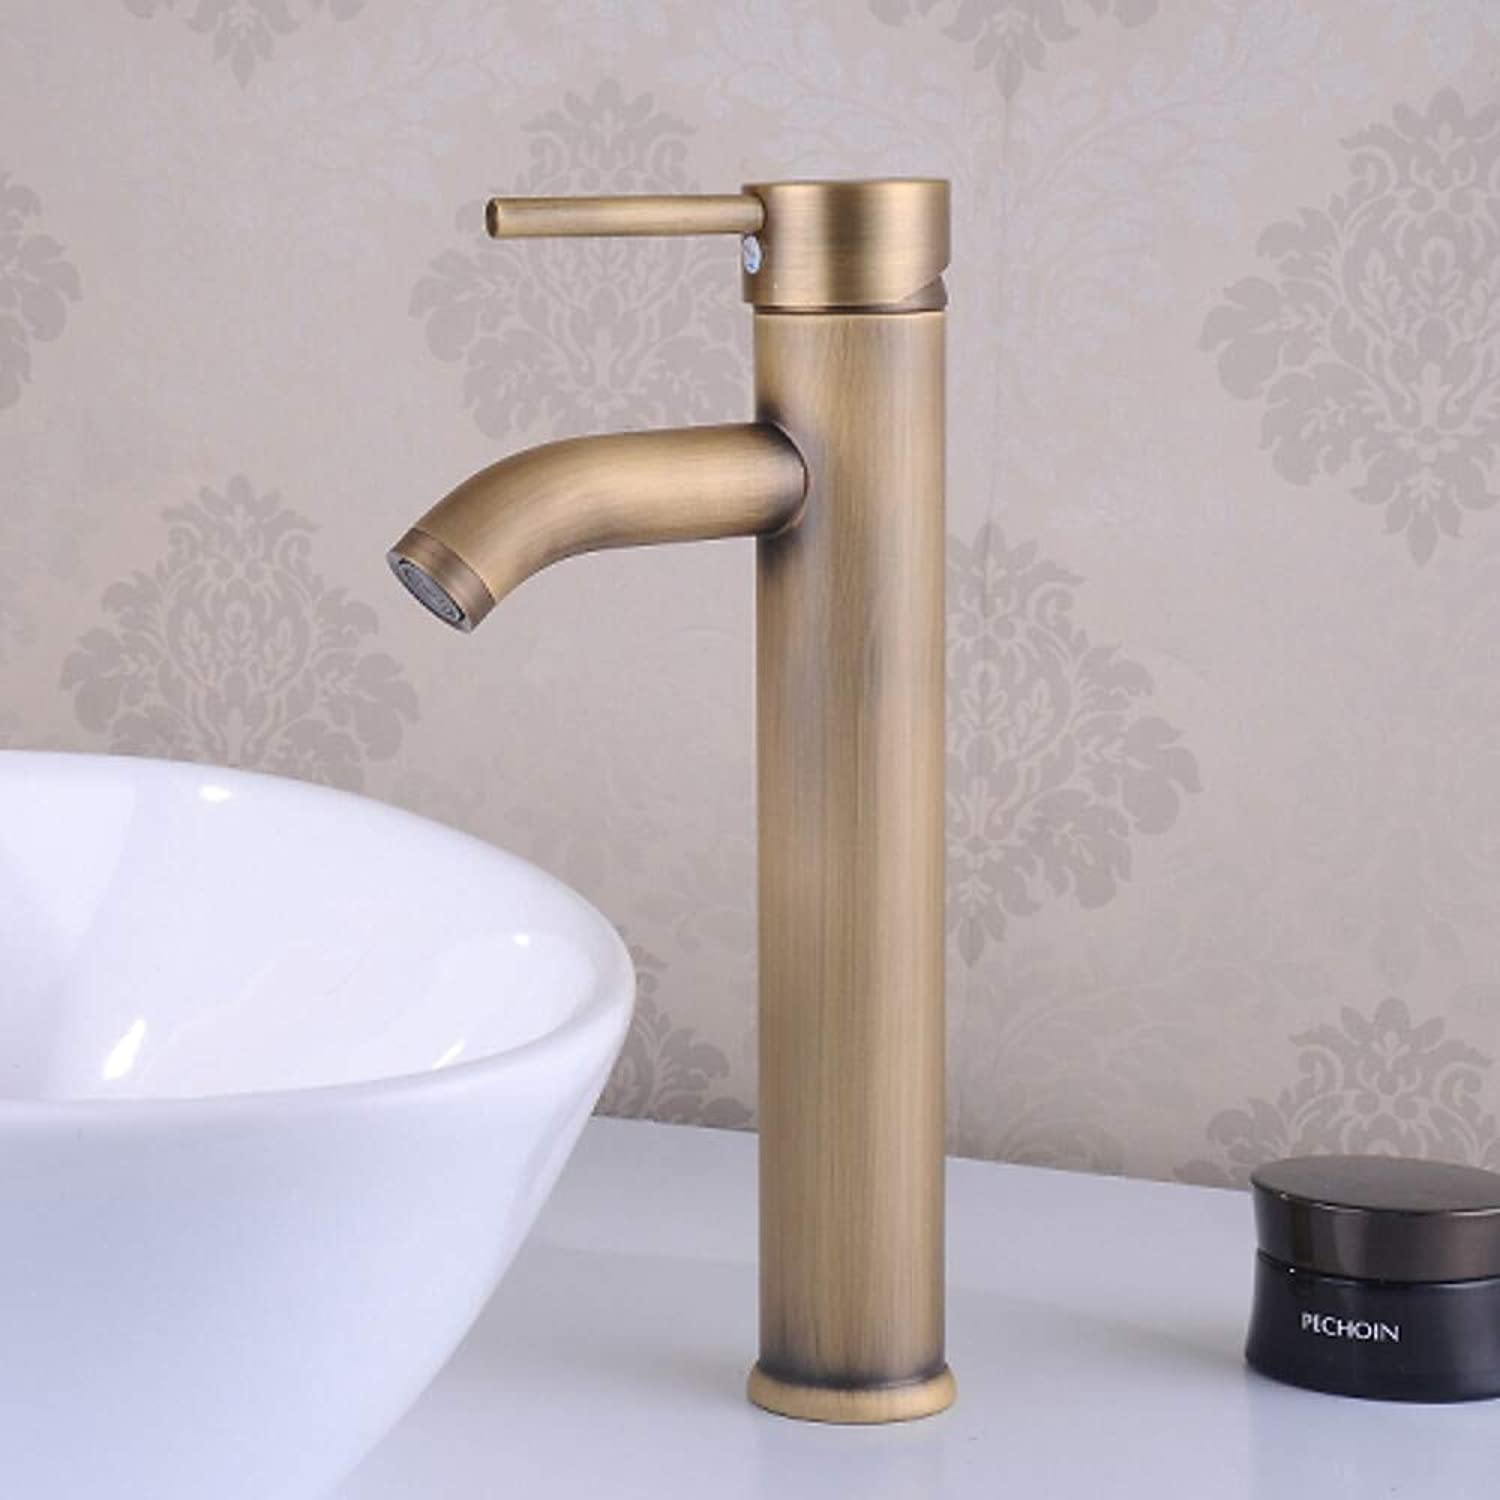 Faucettraditional Centerset Ceramic Valve Single Handle One Hole Antique Brass, Bathroom Sink Faucet